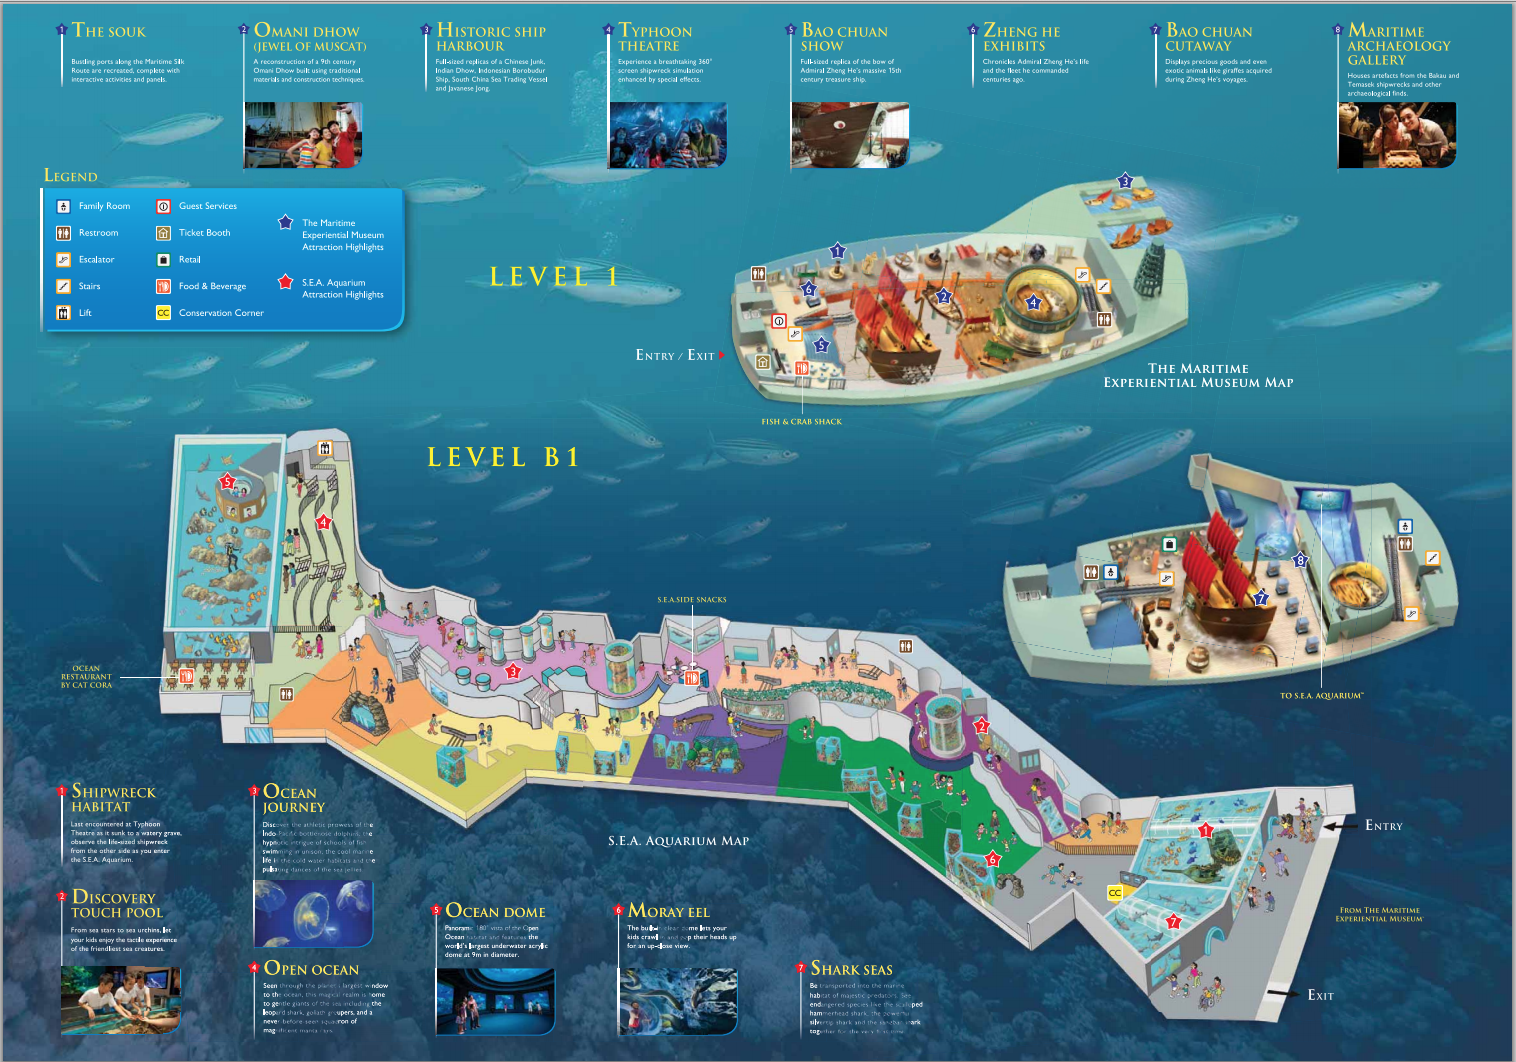 SEA-Aquarium-Map